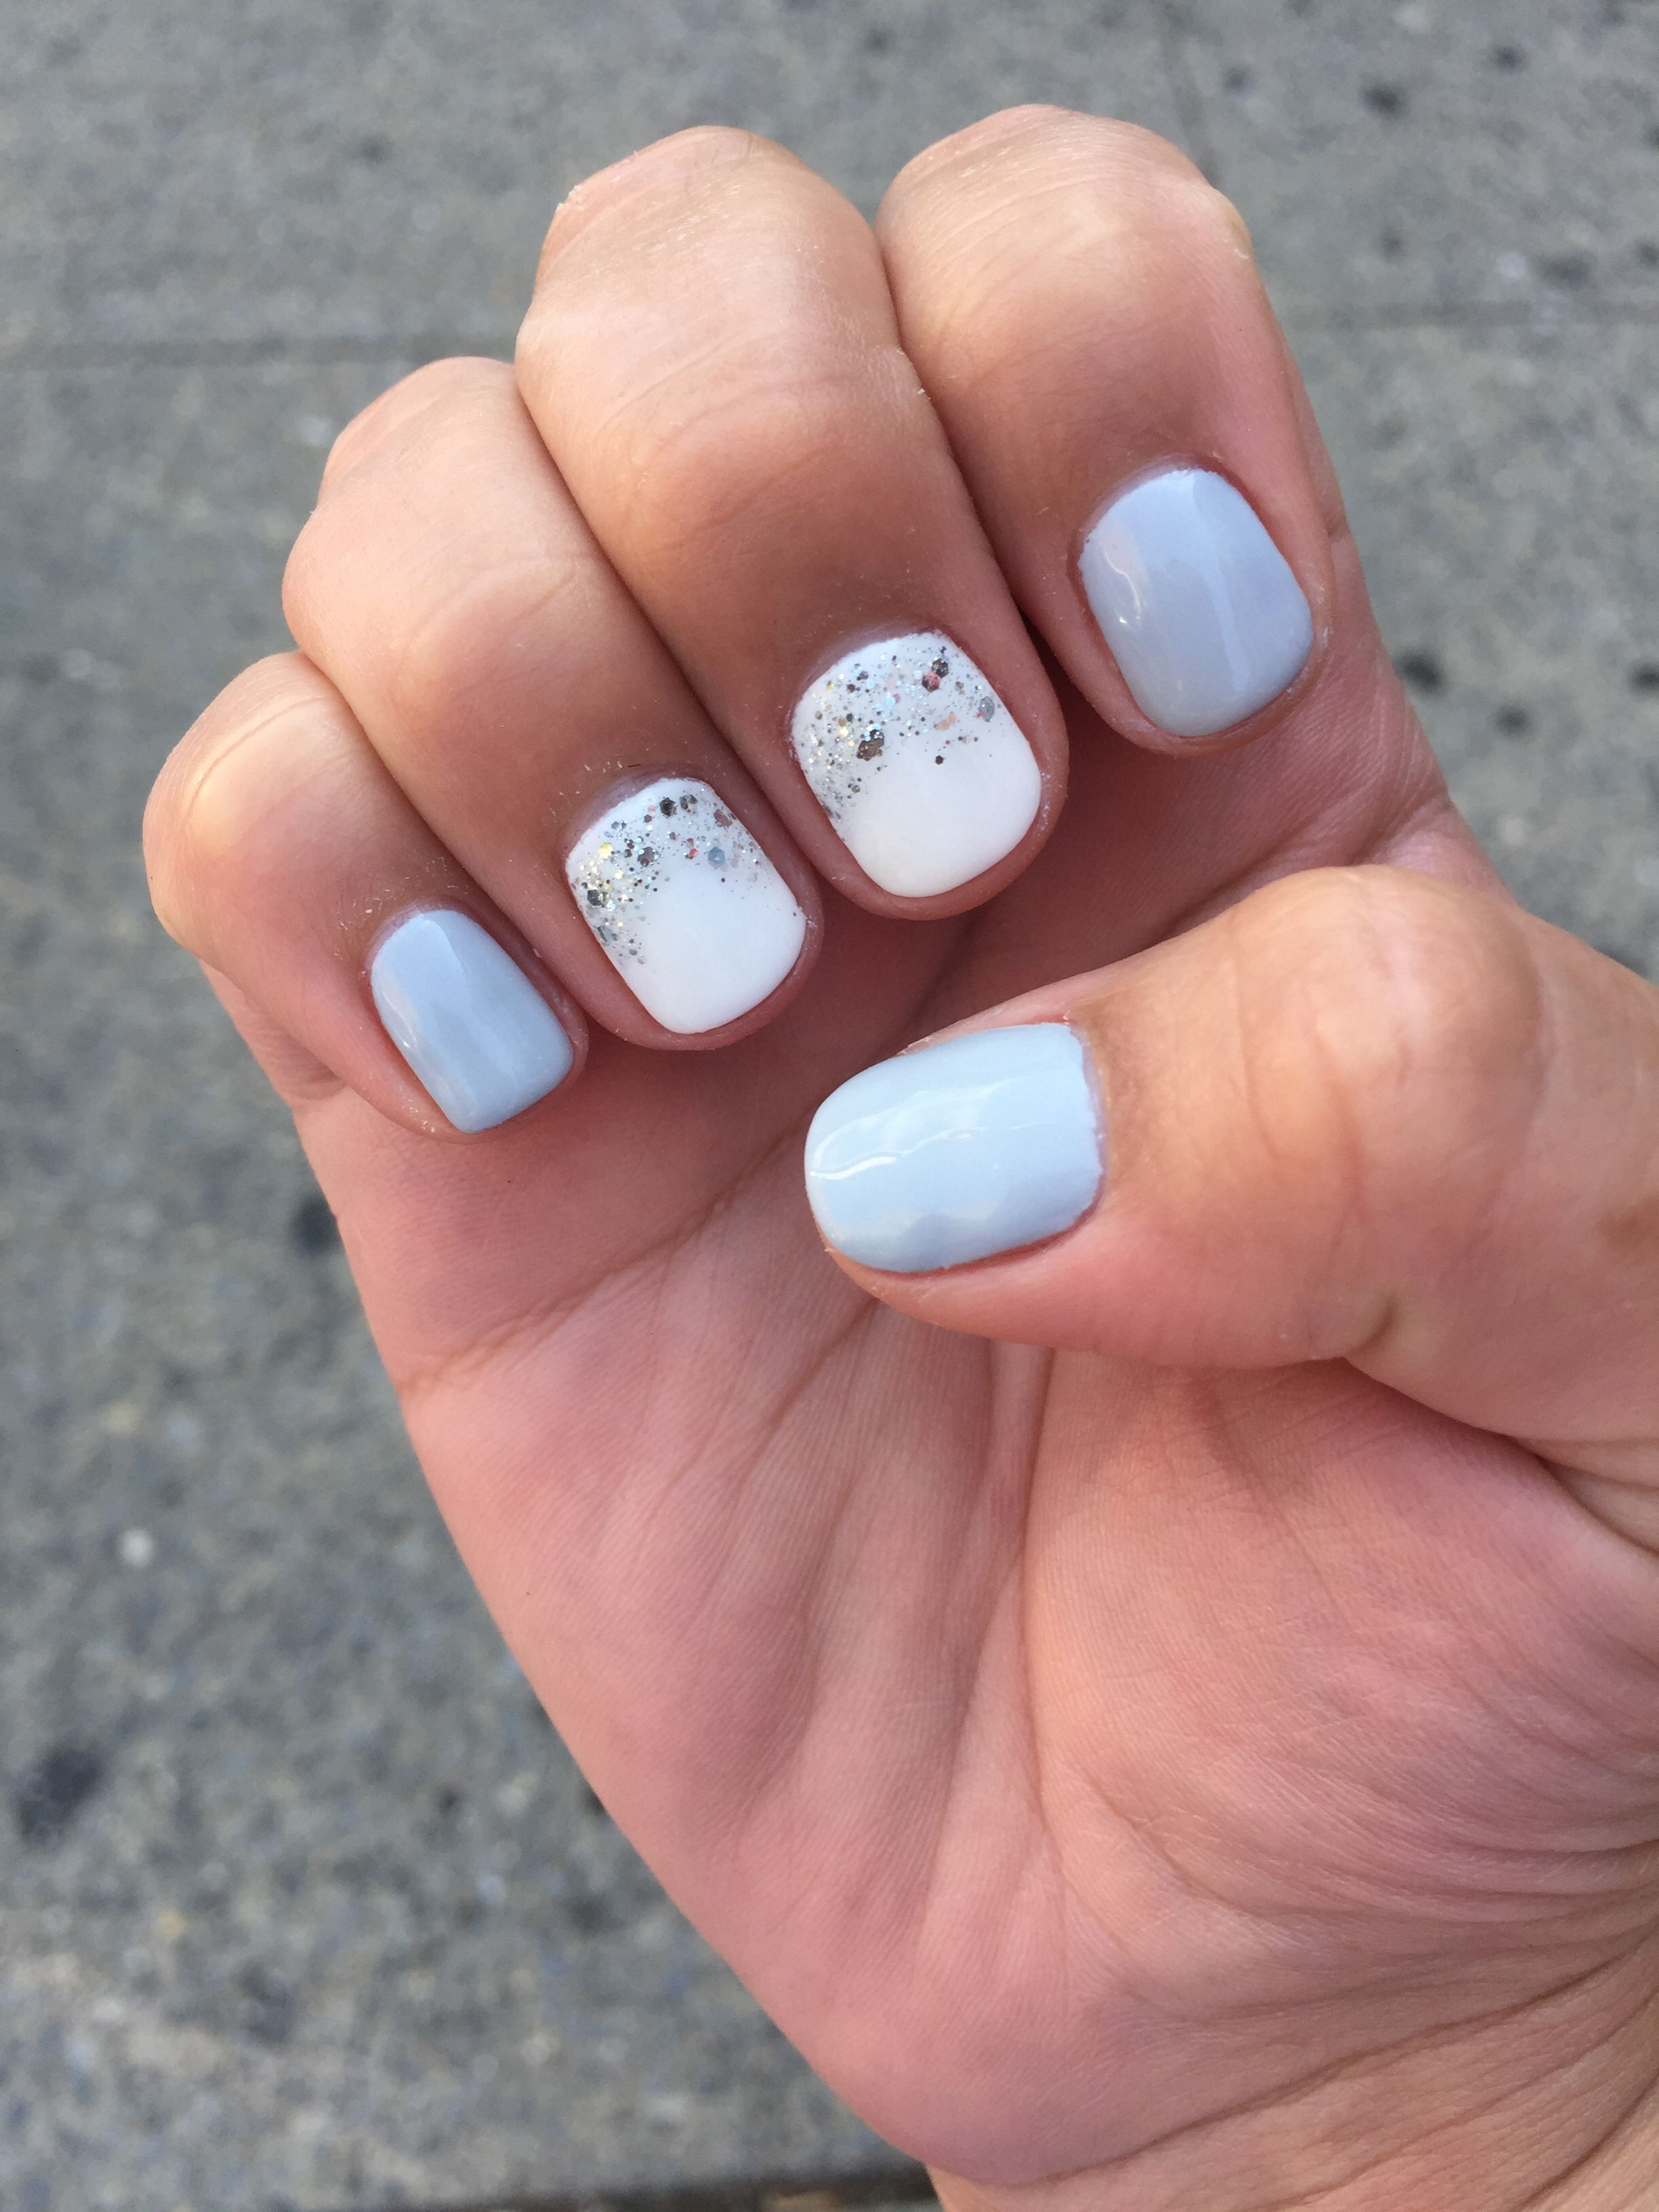 Grey And White Gel Manicure With Silver Detail Spring Nails Springnails Grey White Gelmanicure Gel Manicure Glitter Gel Nails Gel Nail Colors